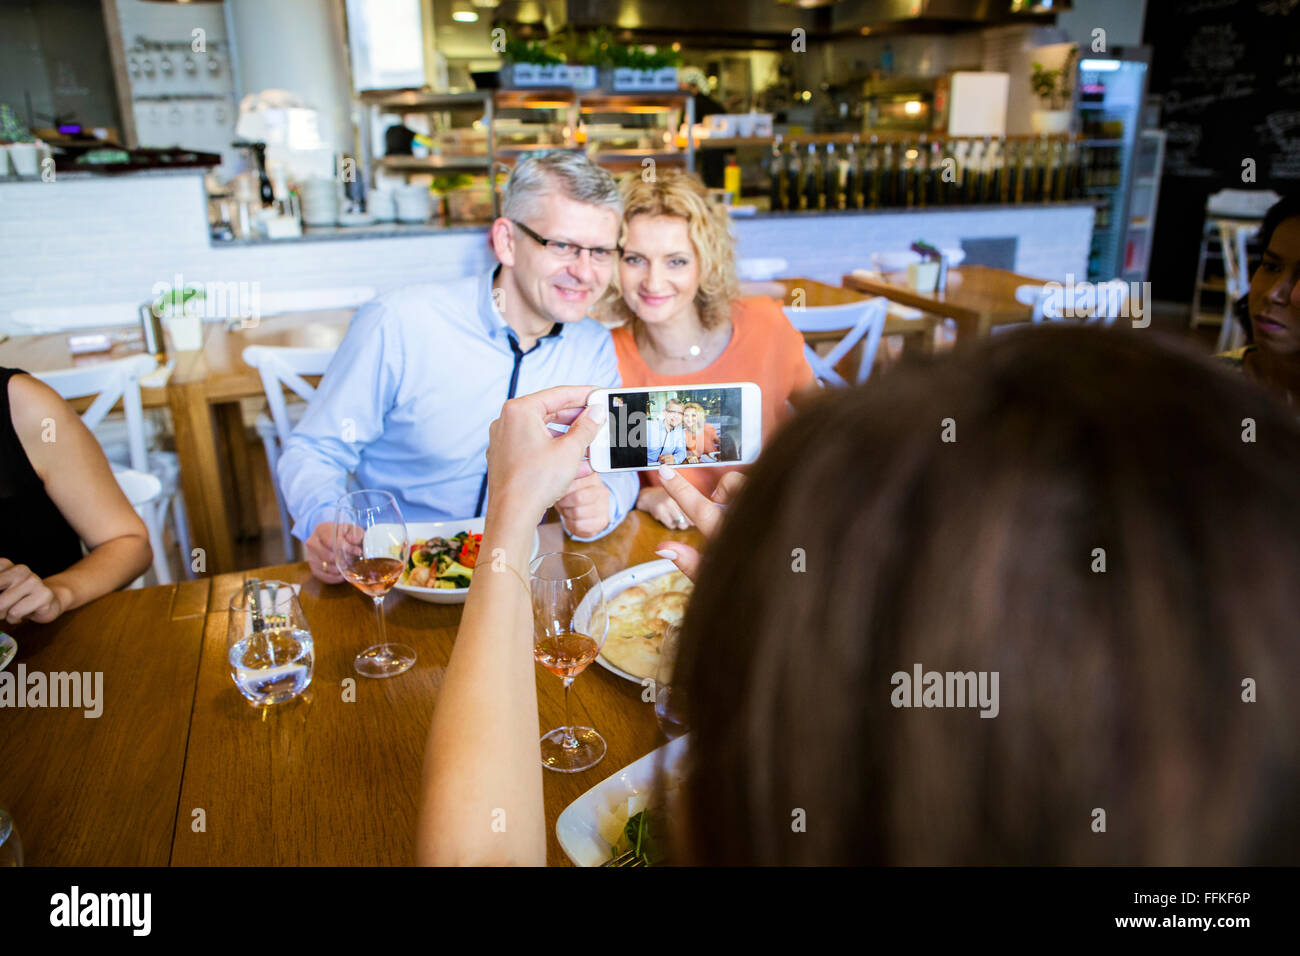 Taking a picture of friends in restaurant Stock Photo